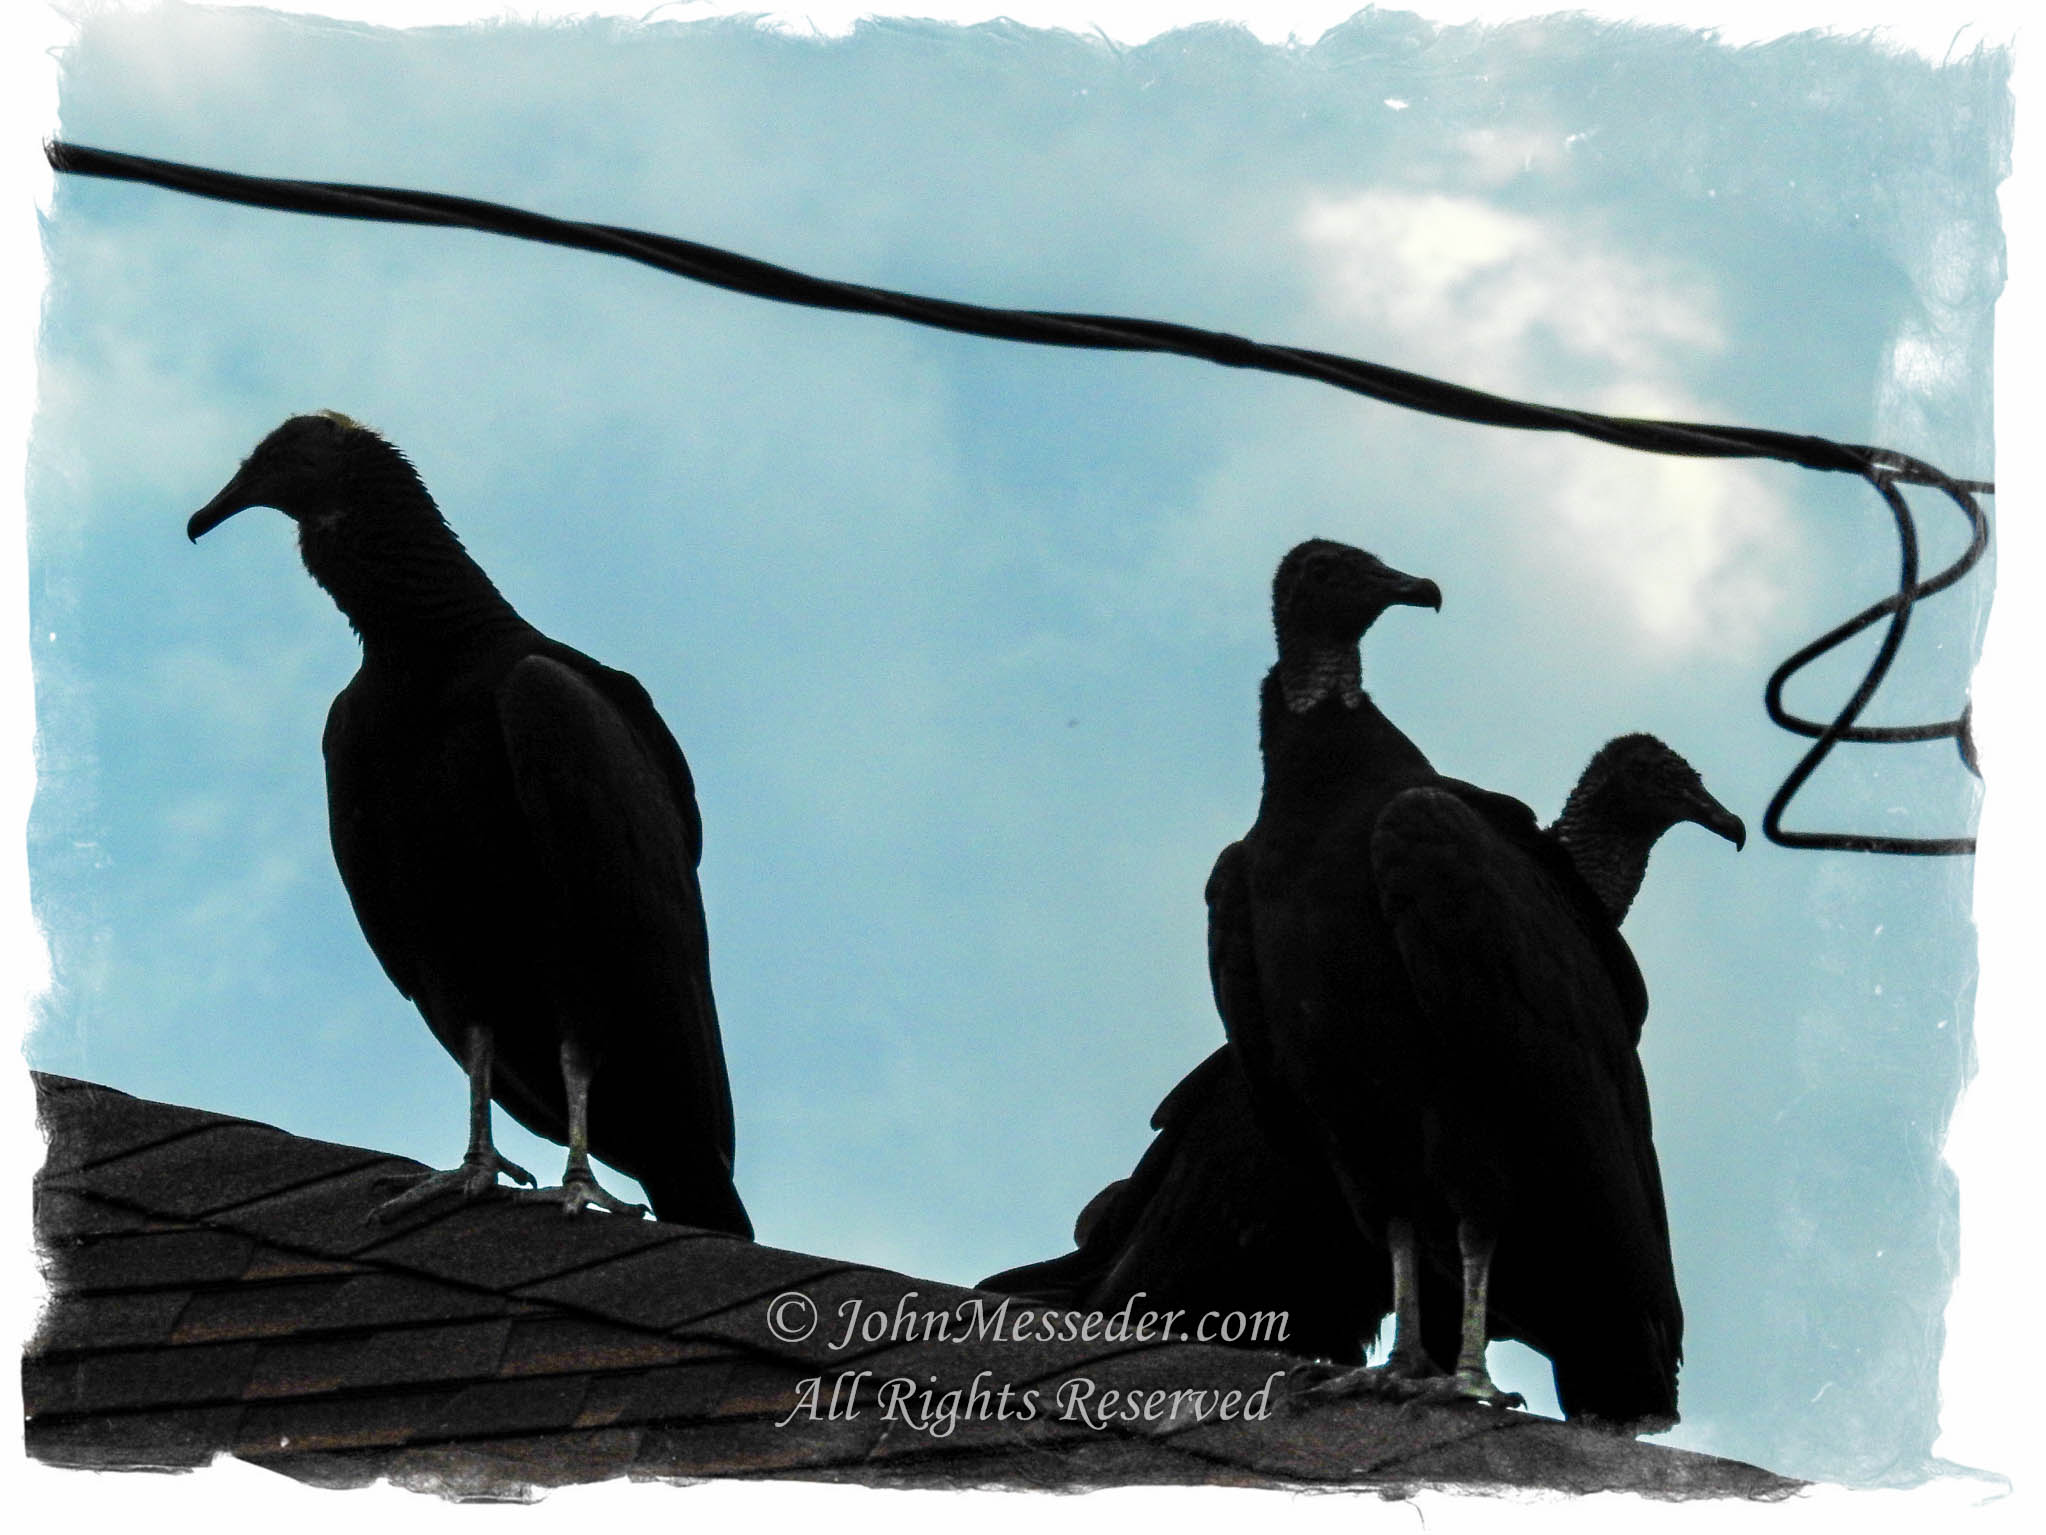 Black vultures silhouetted on the roof